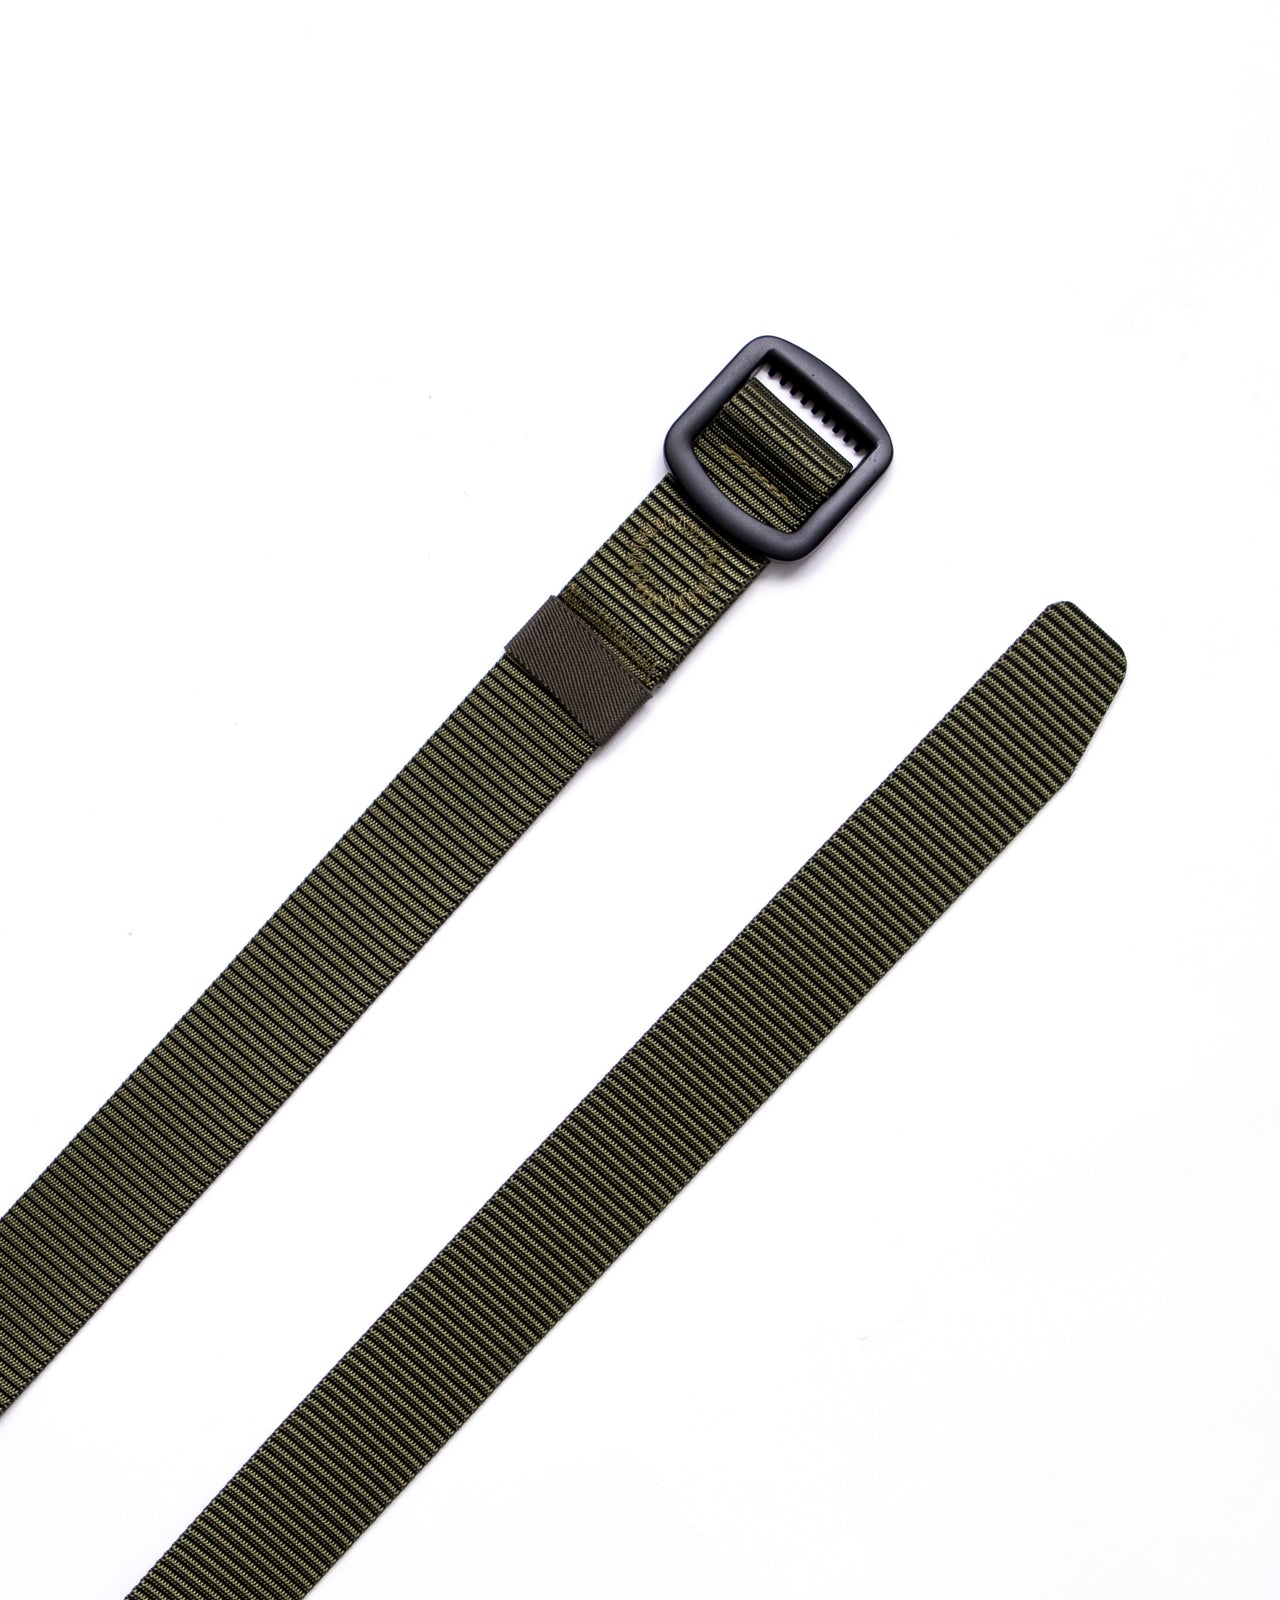 Trek Buckle Belt - Color: Olive/Black | Green